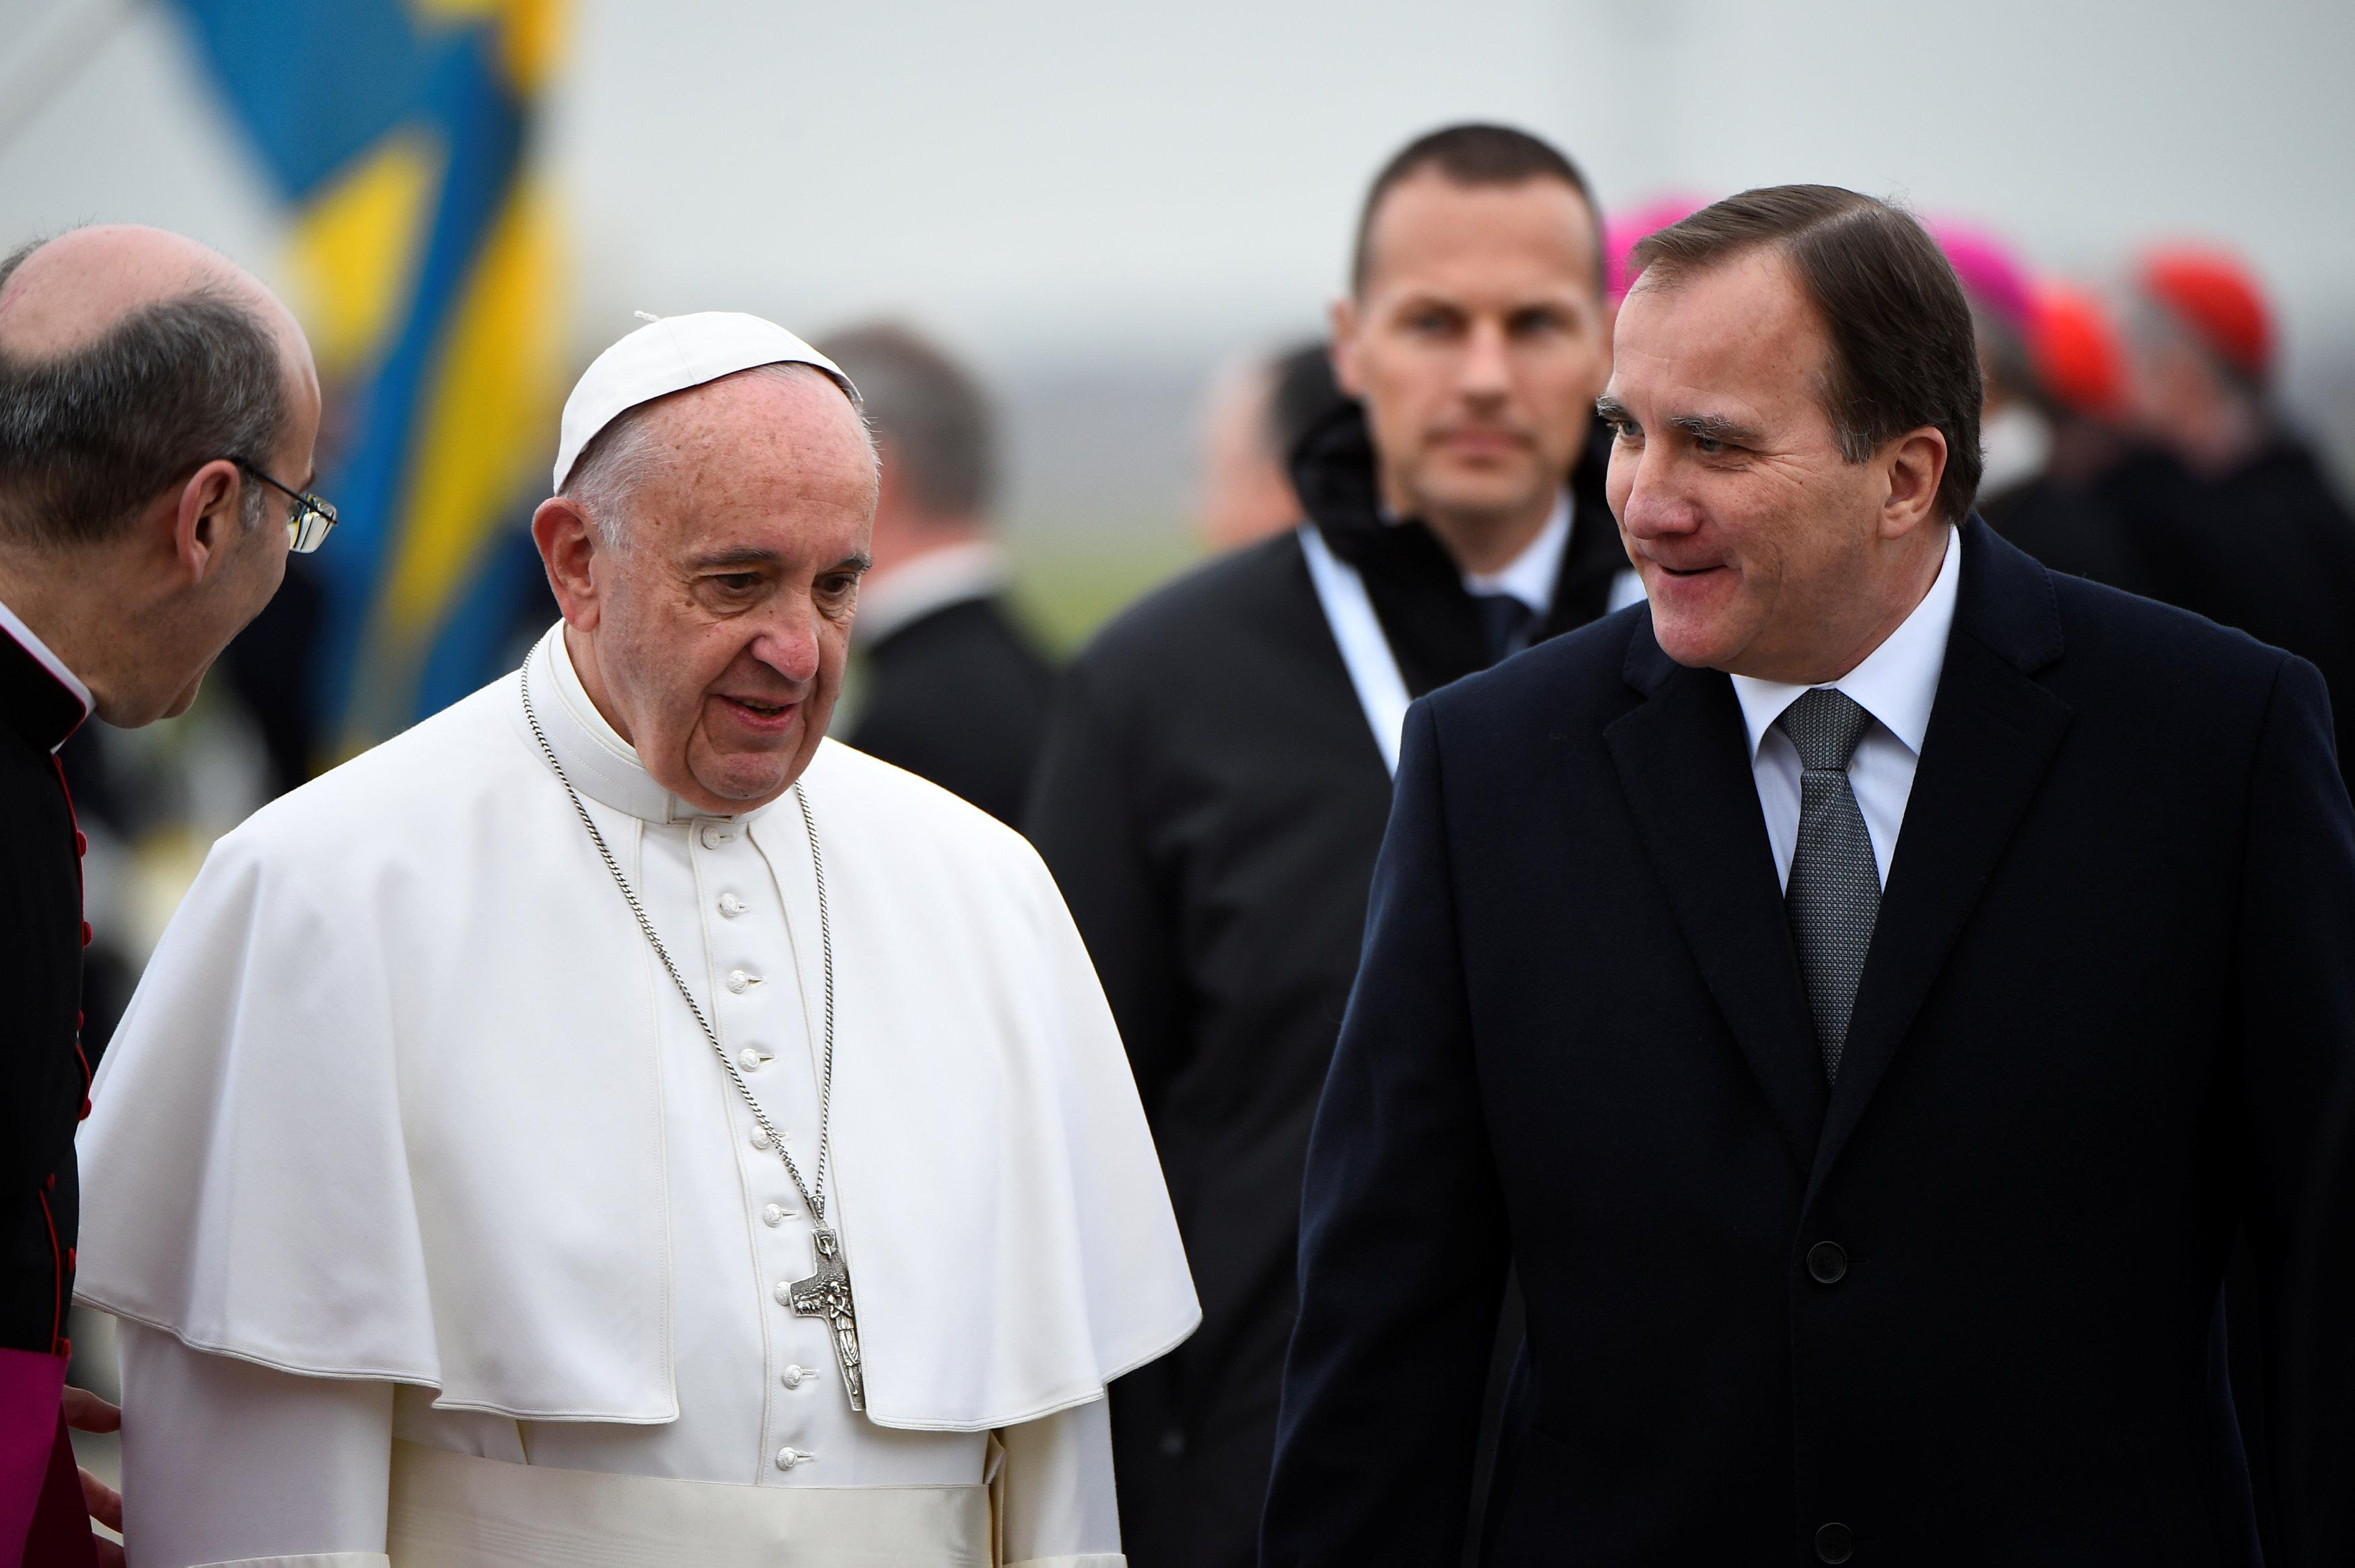 Pope Francis in Sweden